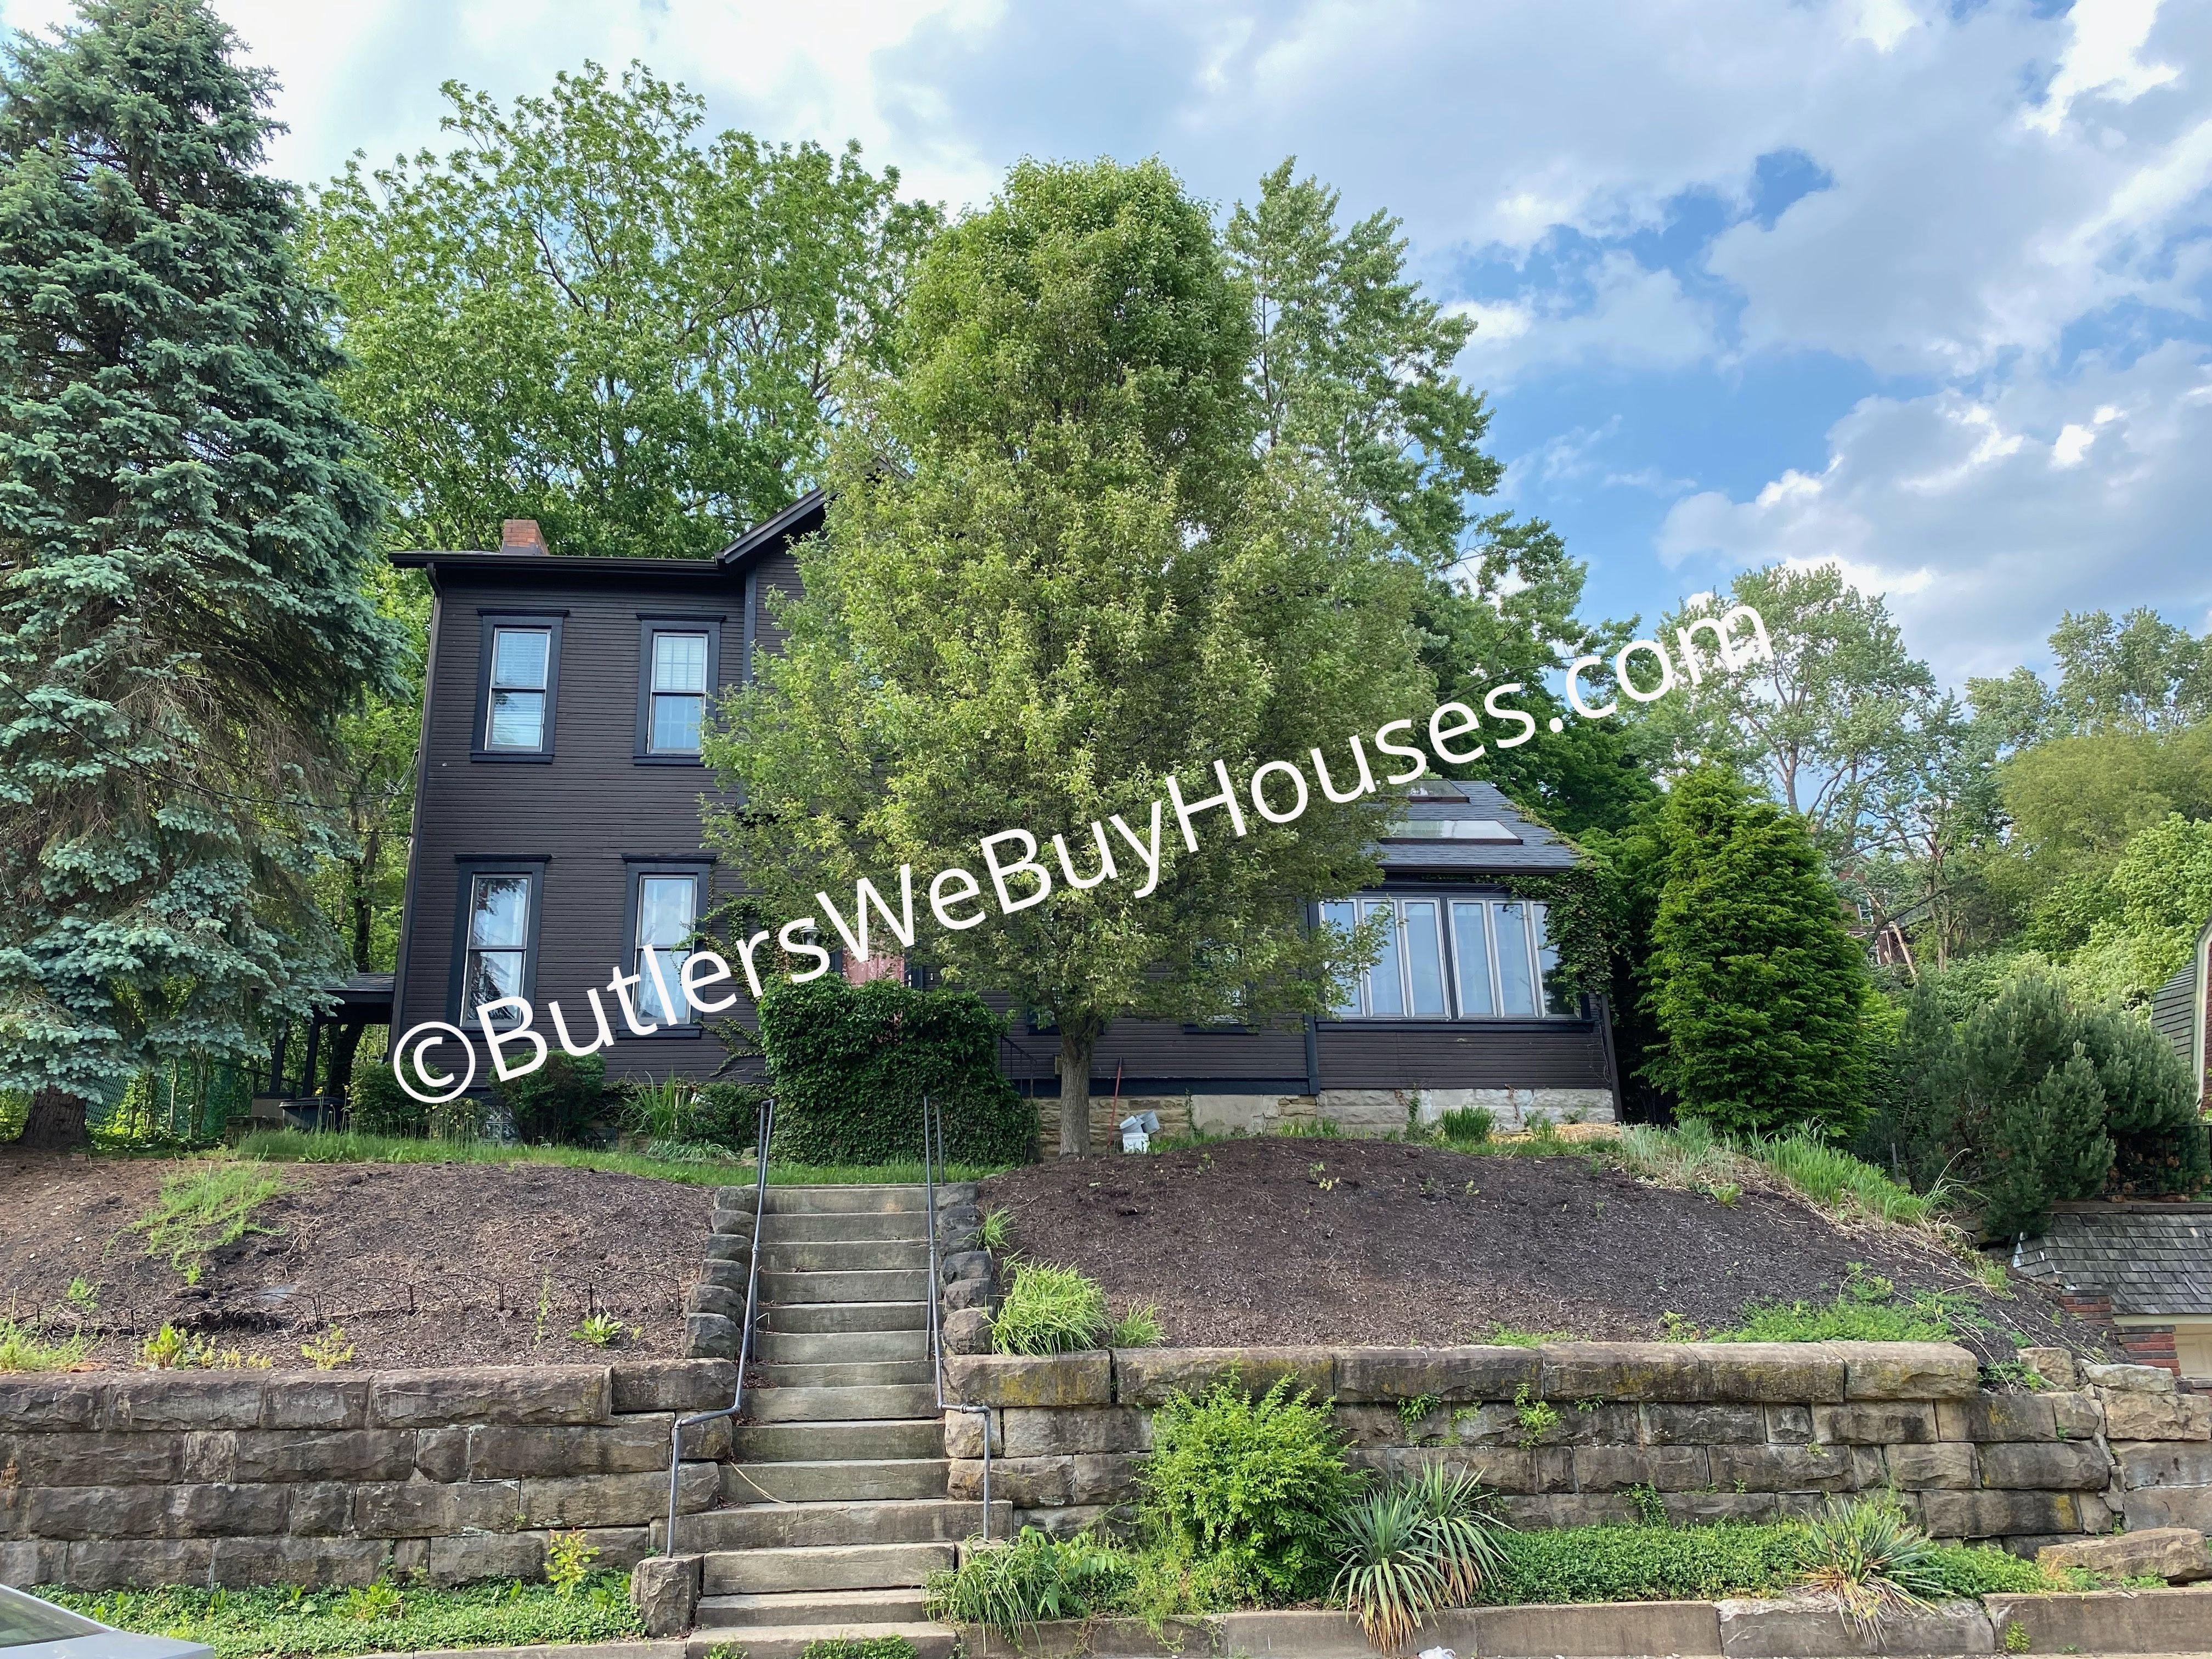 314 W Pearl St, Butler, PA